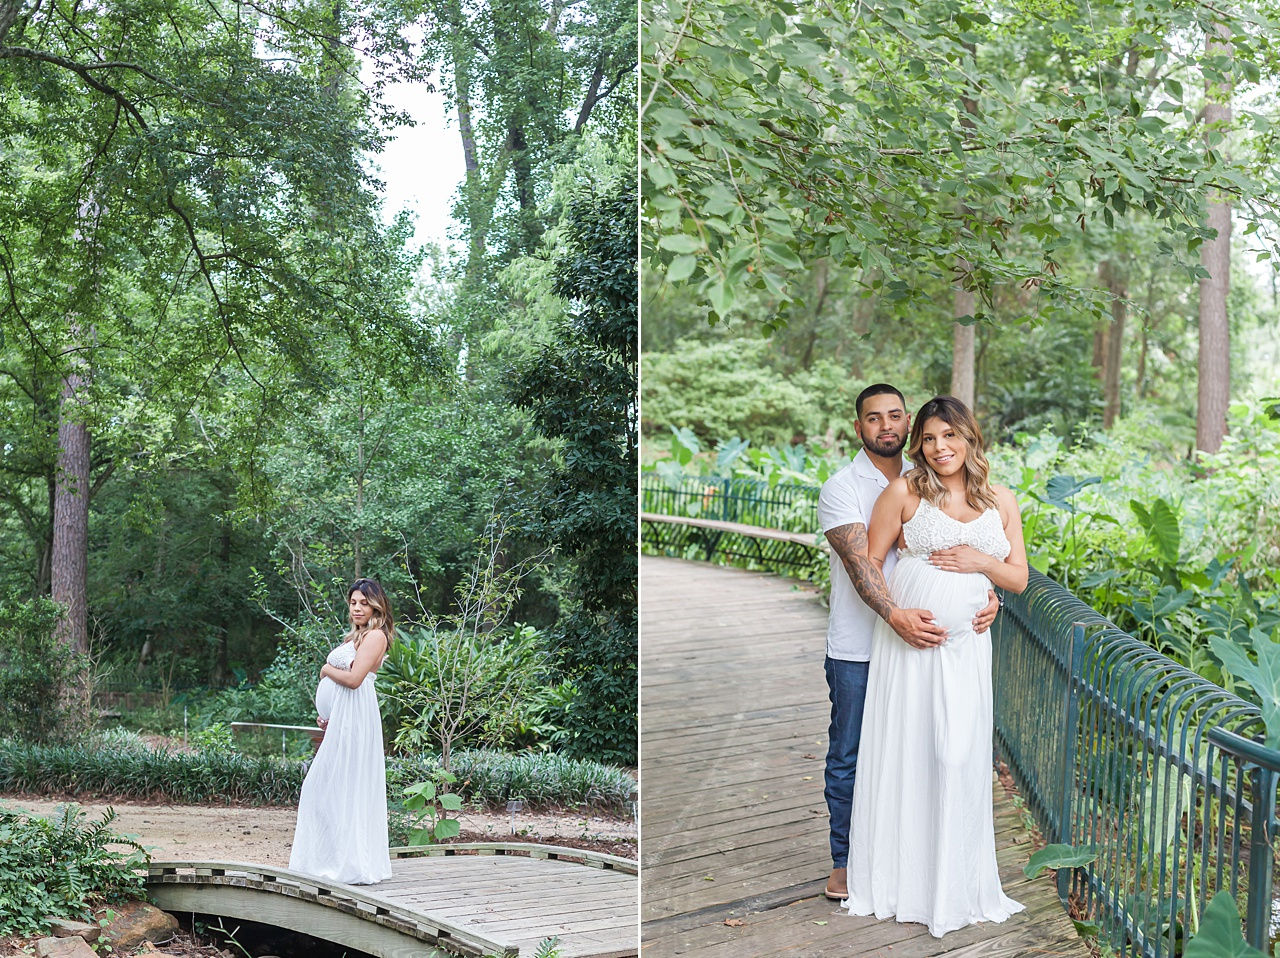 mercer arboretum beautiful maternity photo session by kristal bean photography